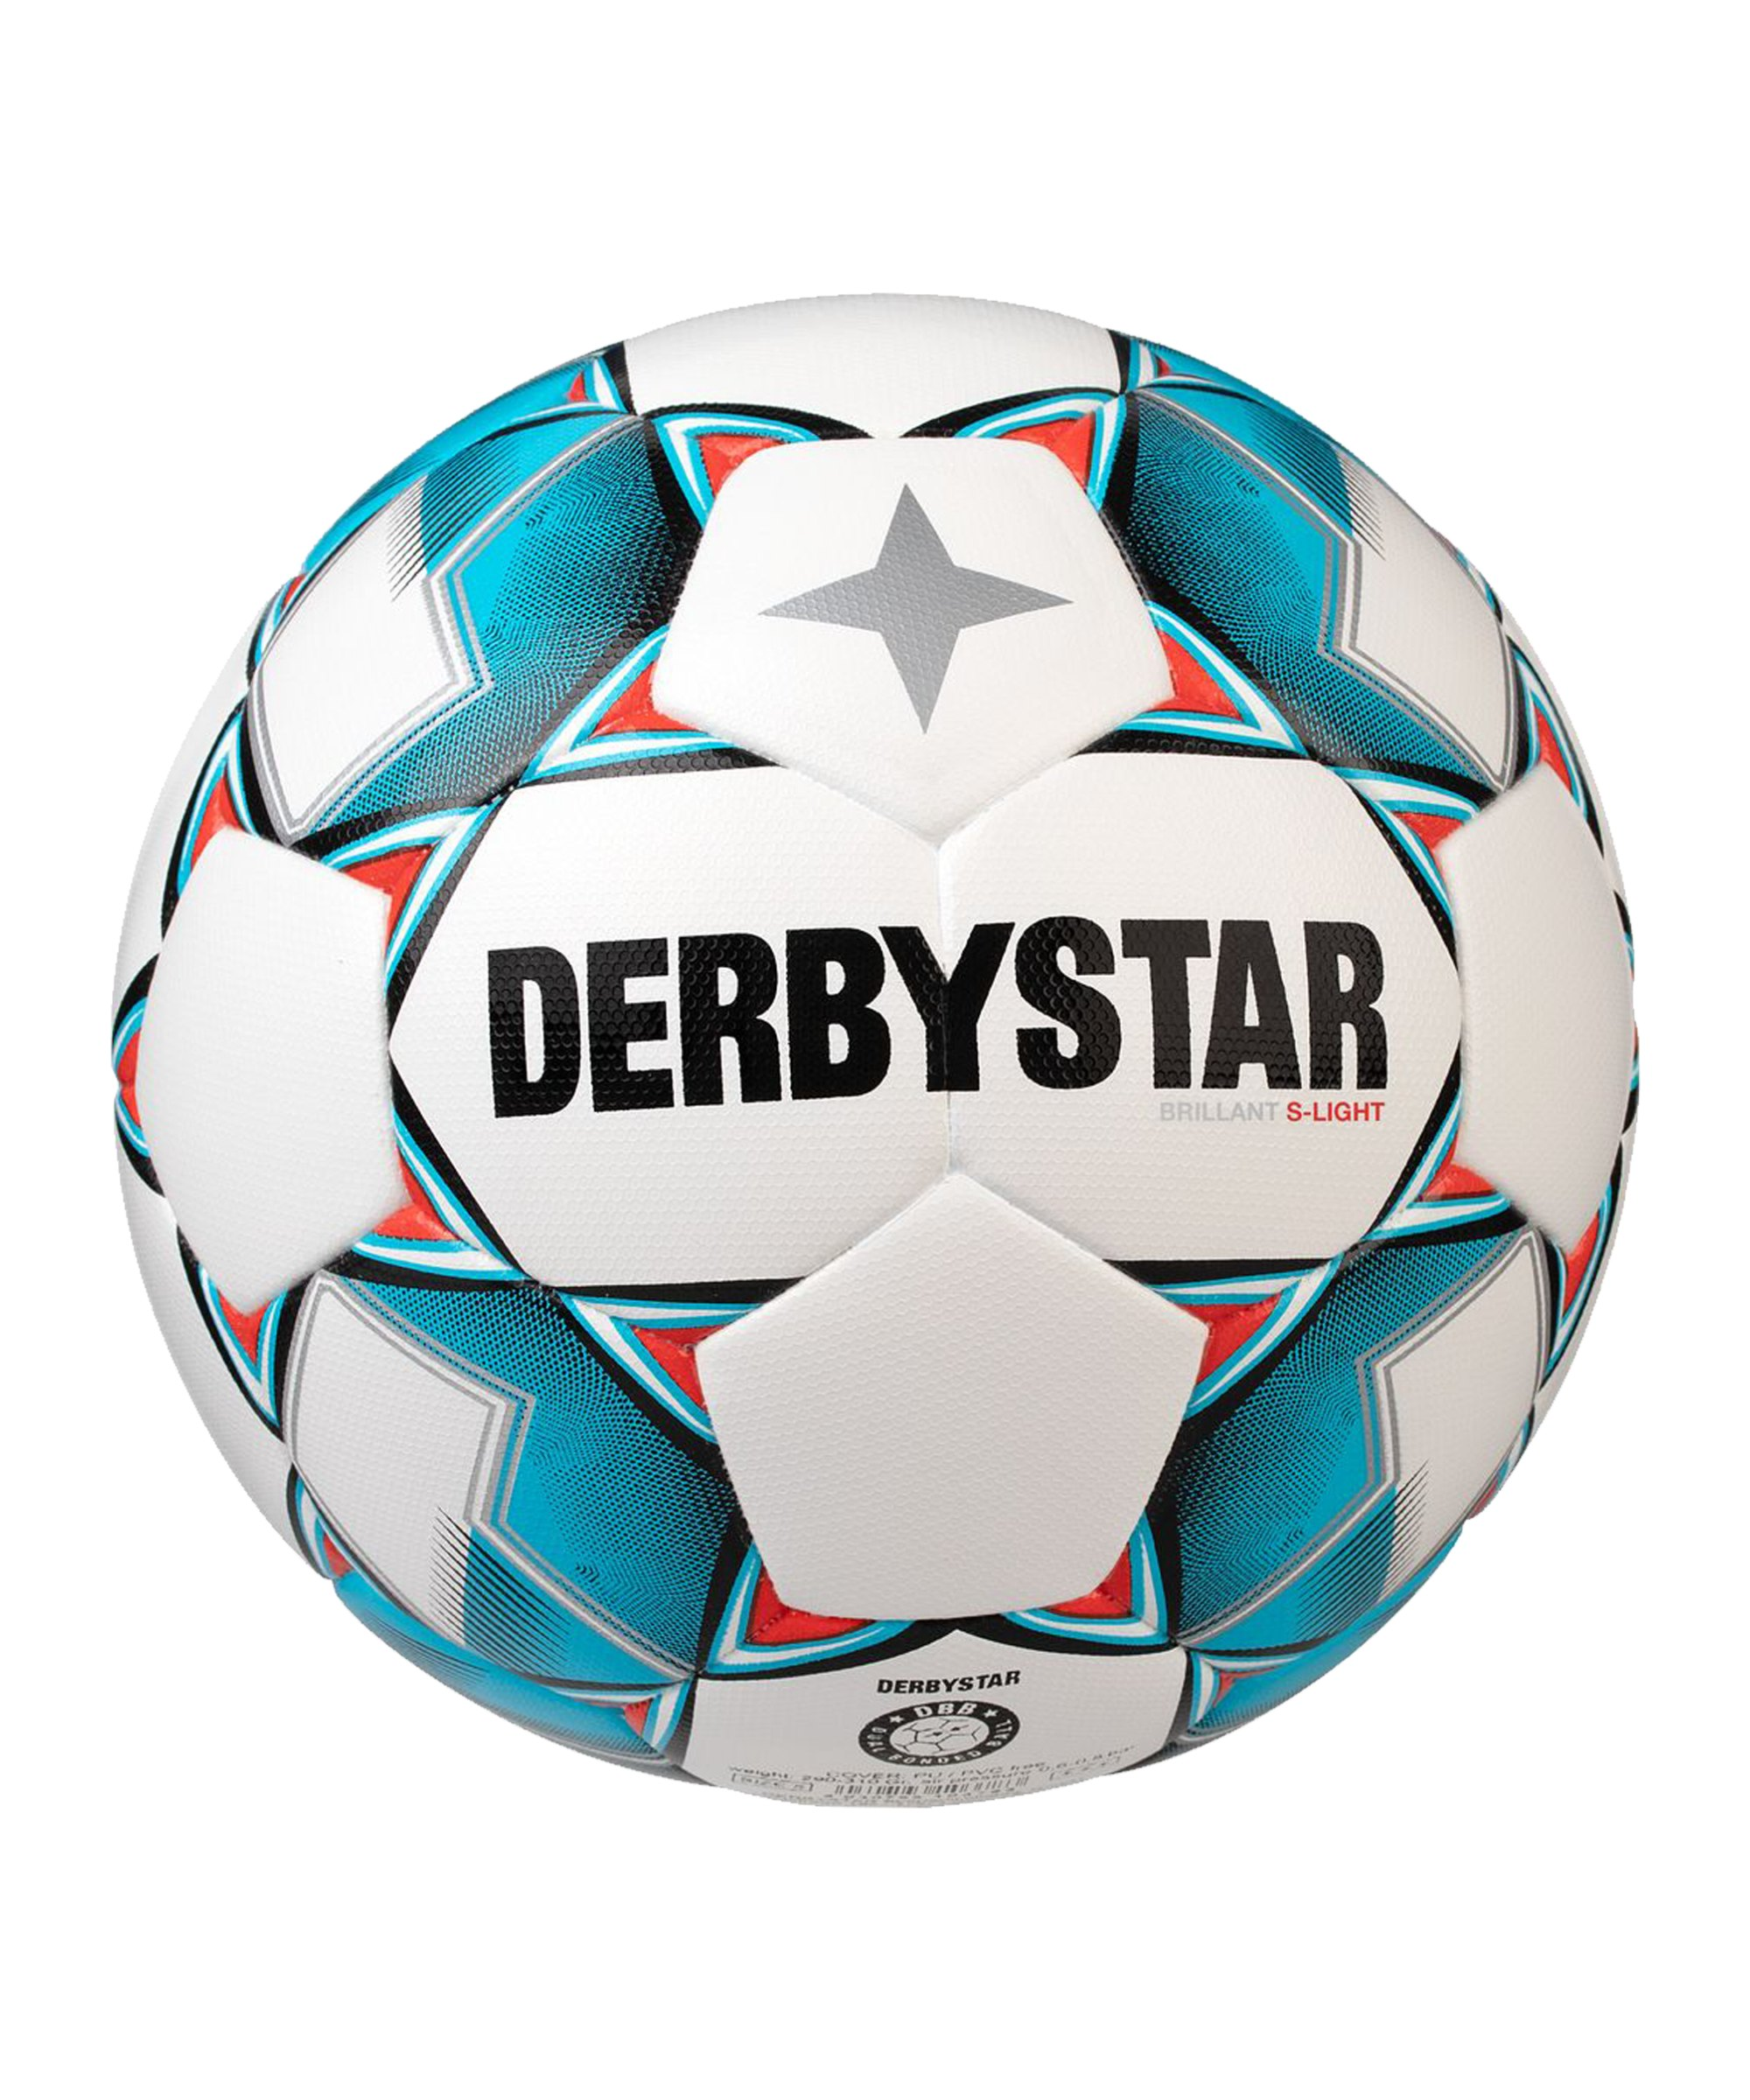 Derbystar Brillant SLight DBv20 Trainingsball F162 - weiss